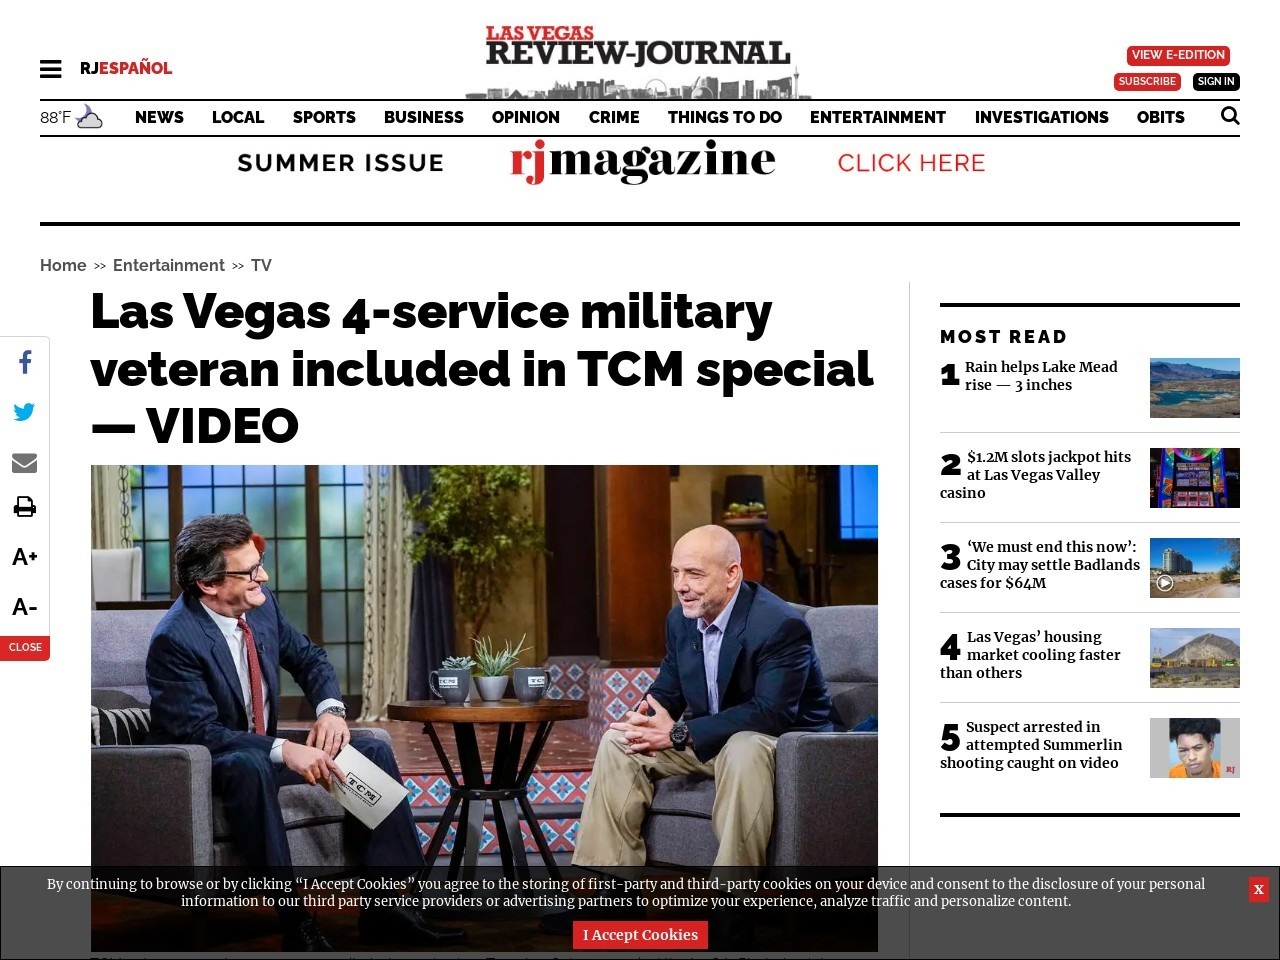 Las Vegas 4-service military veteran included in TCM special — VIDEO